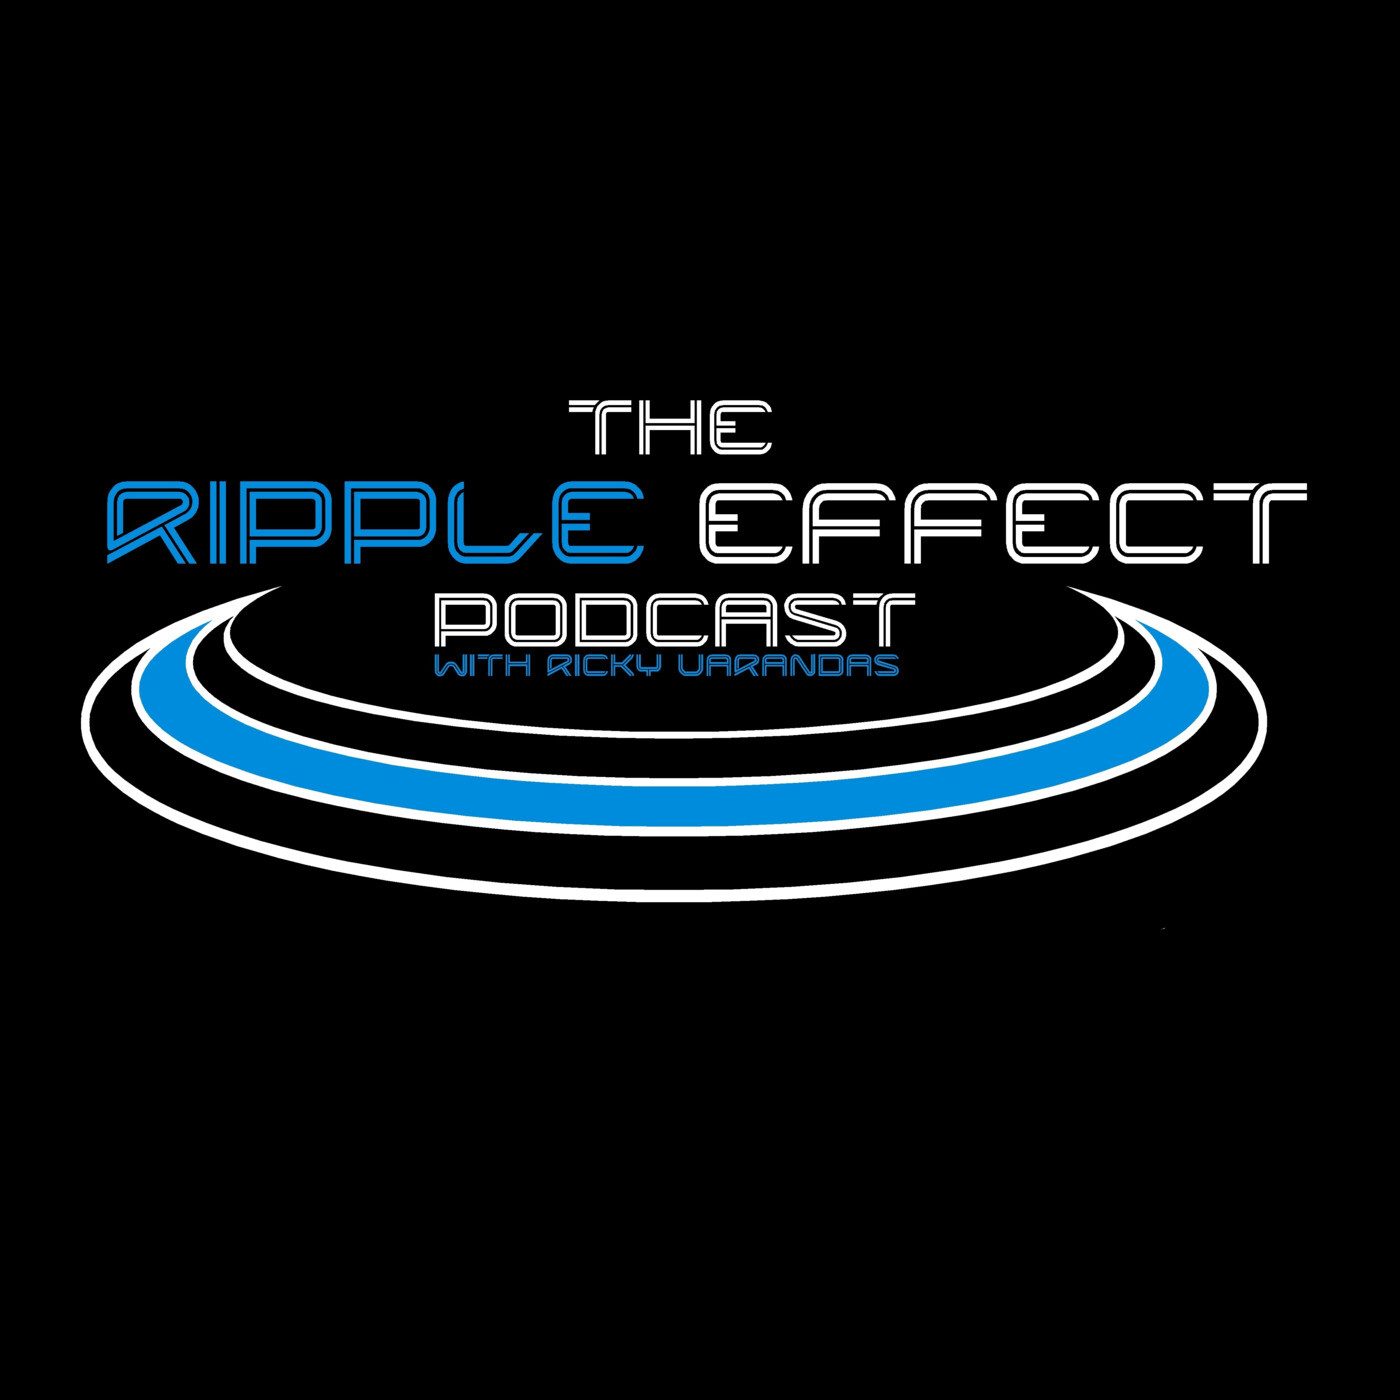 The Ripple Effect Podcast # 122 (Fights With Friends | UFC 210)